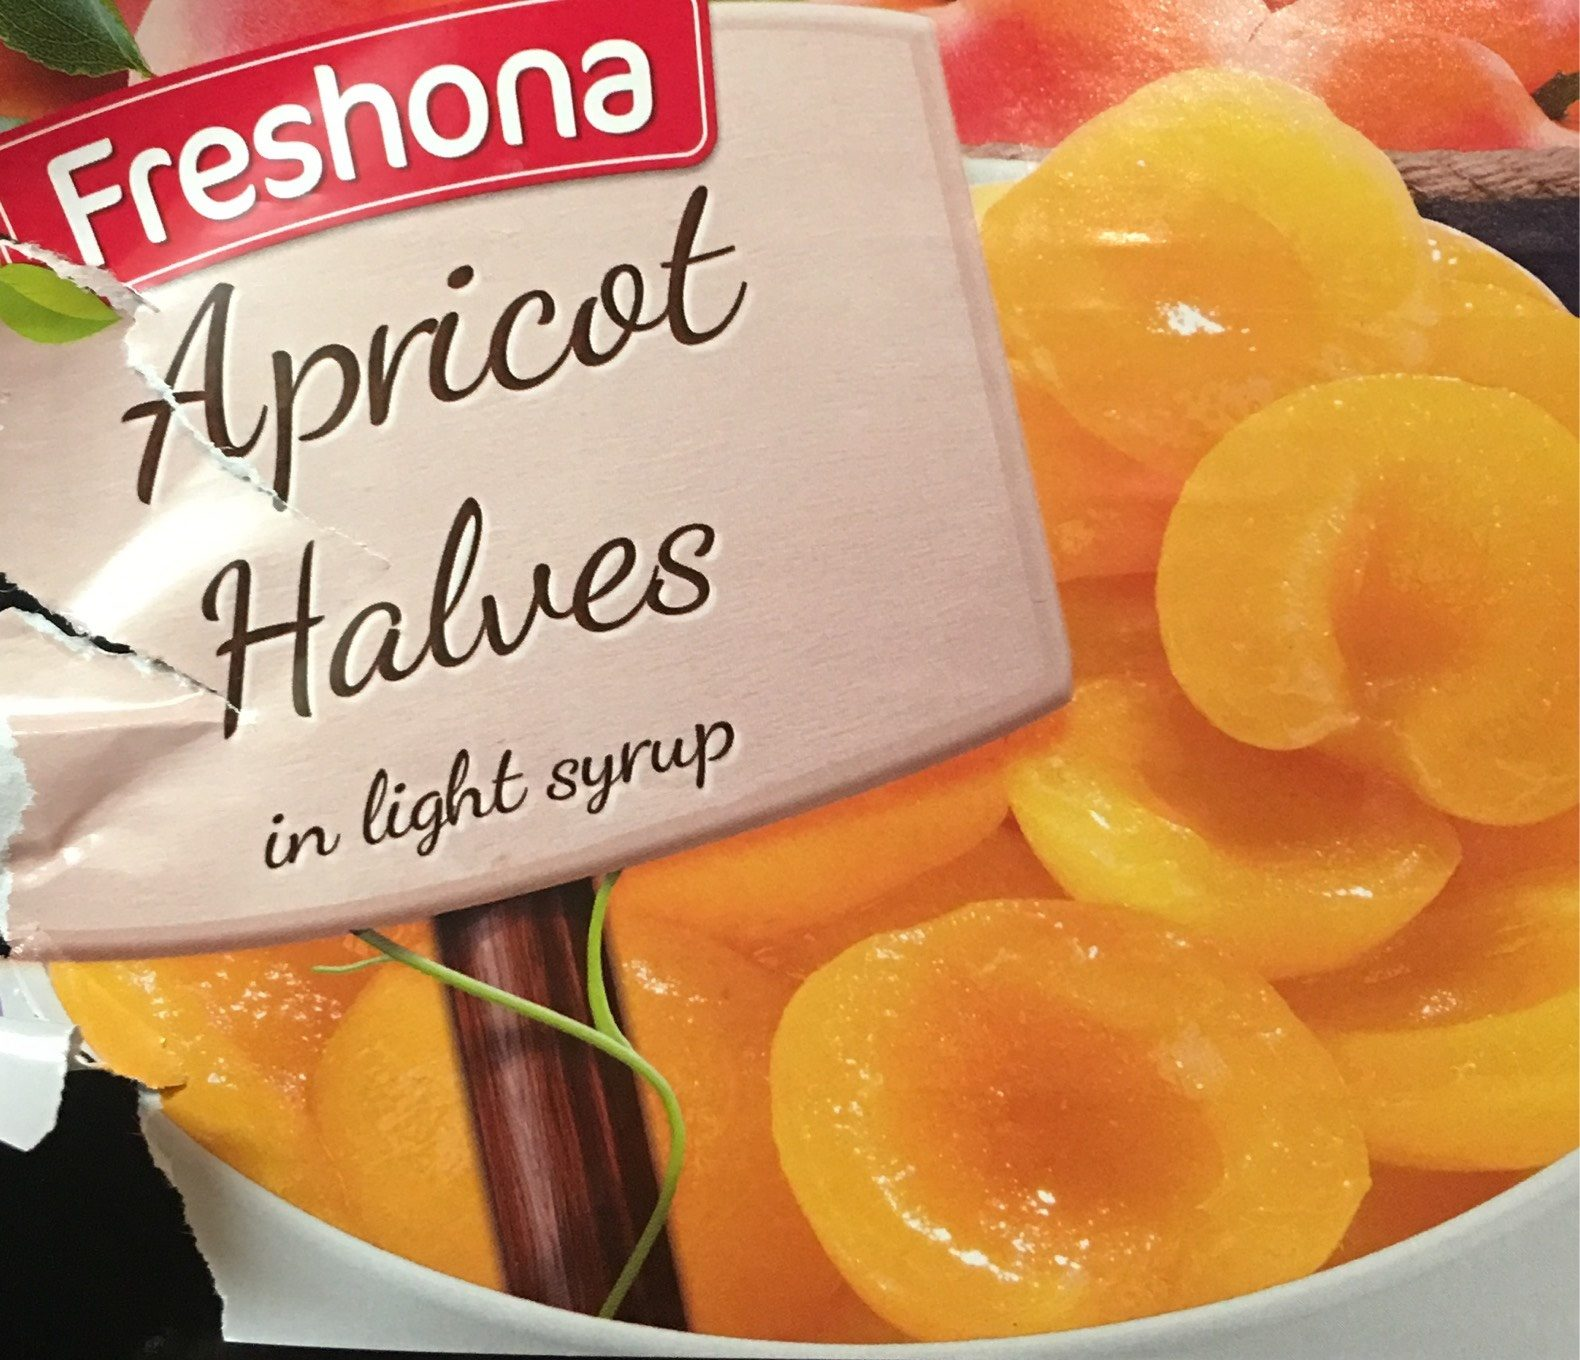 Apricots in Light Syrup - Product